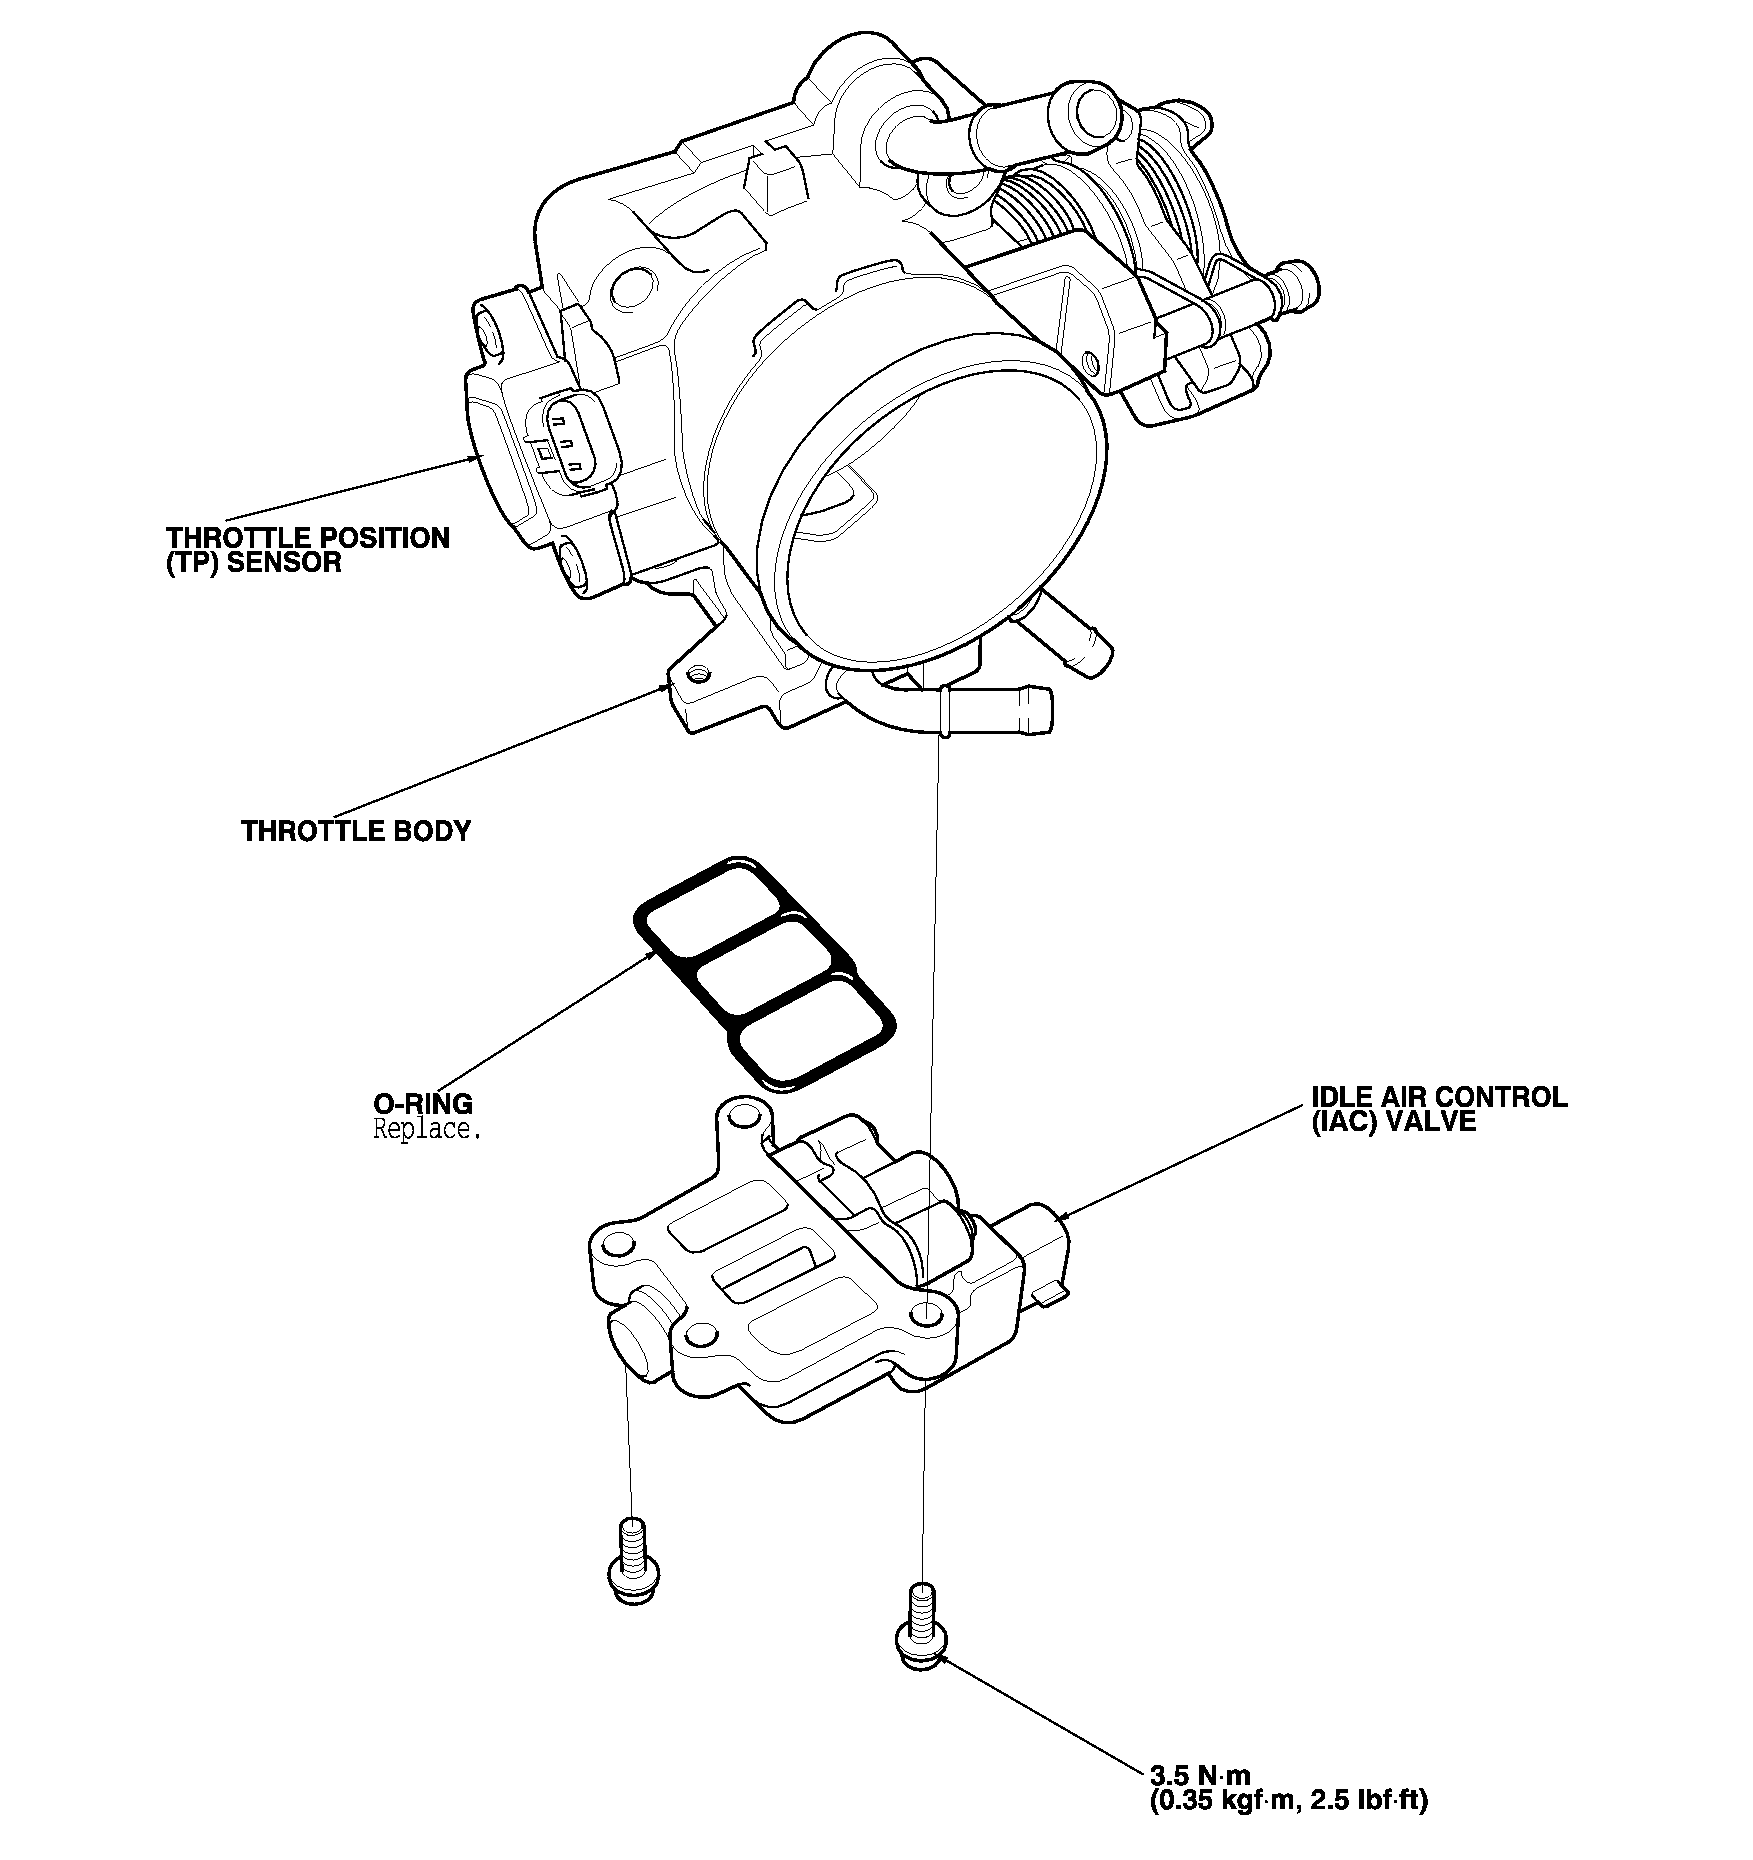 honda element throttle position sensor